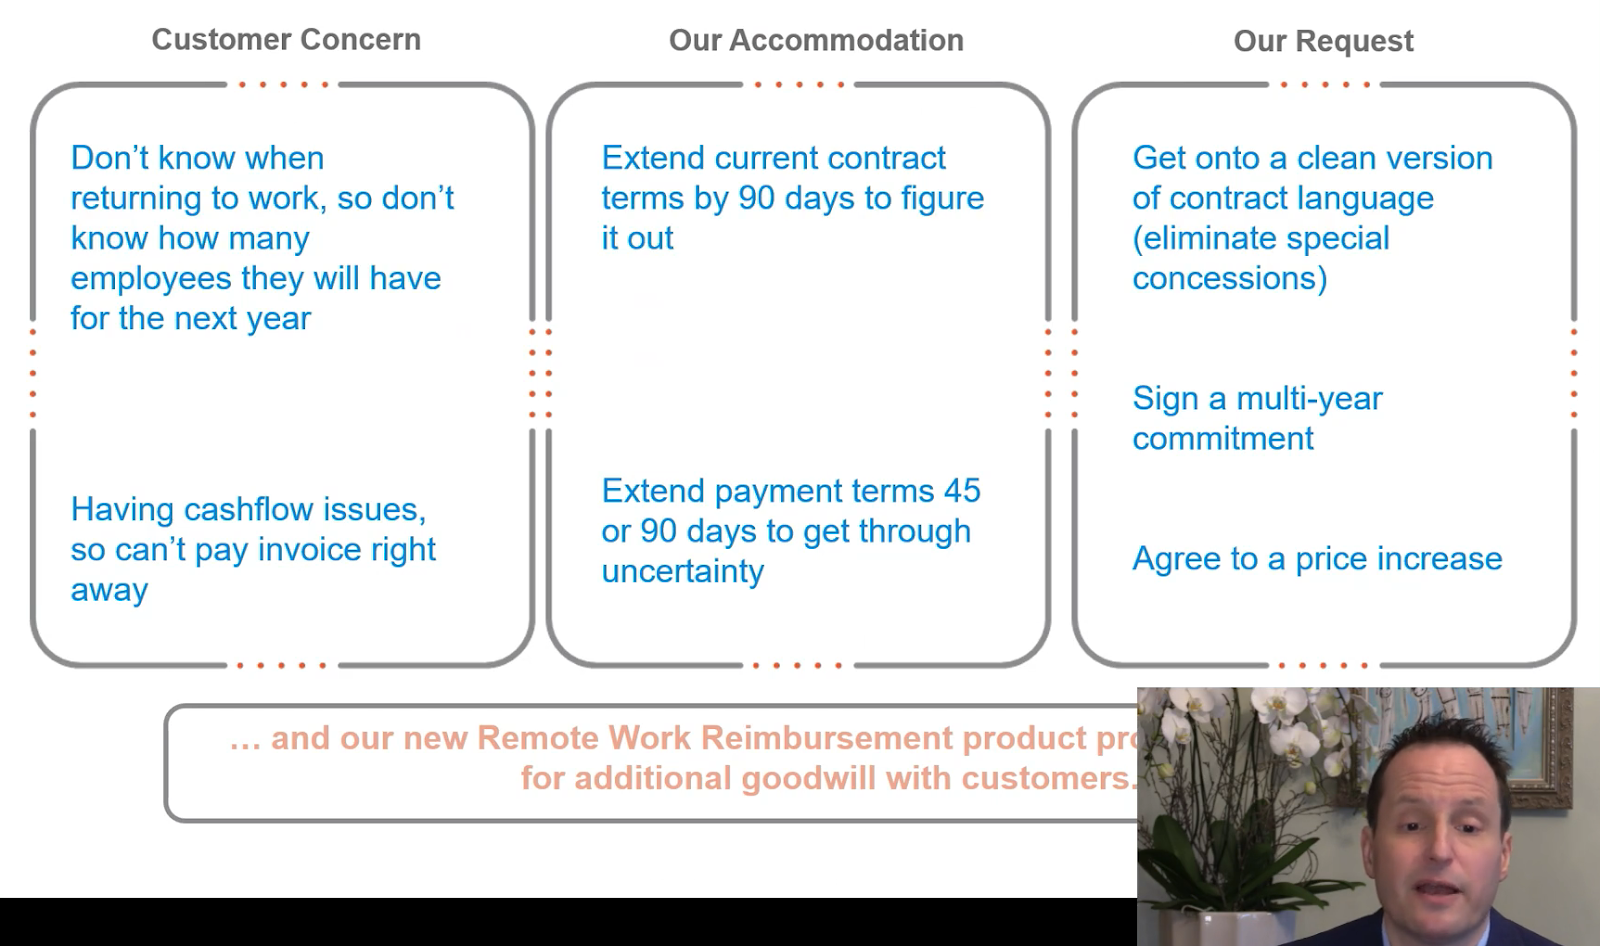 How Motus negotiated with customers post-Covid